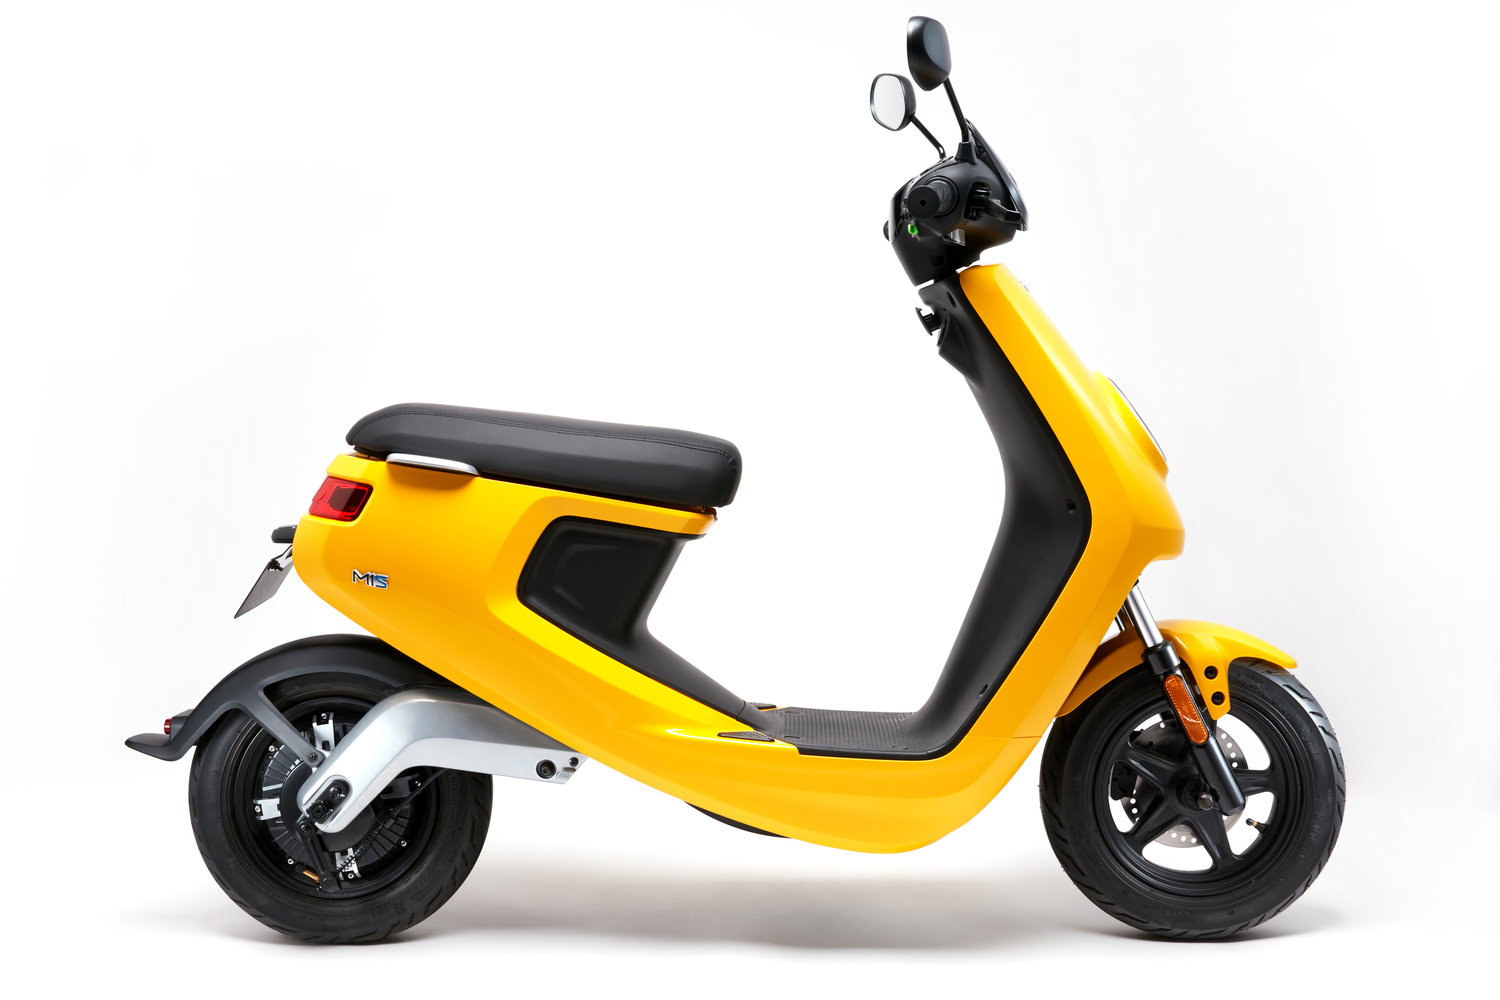 niu m series m1s electric moped scooter 2019. Black Bedroom Furniture Sets. Home Design Ideas